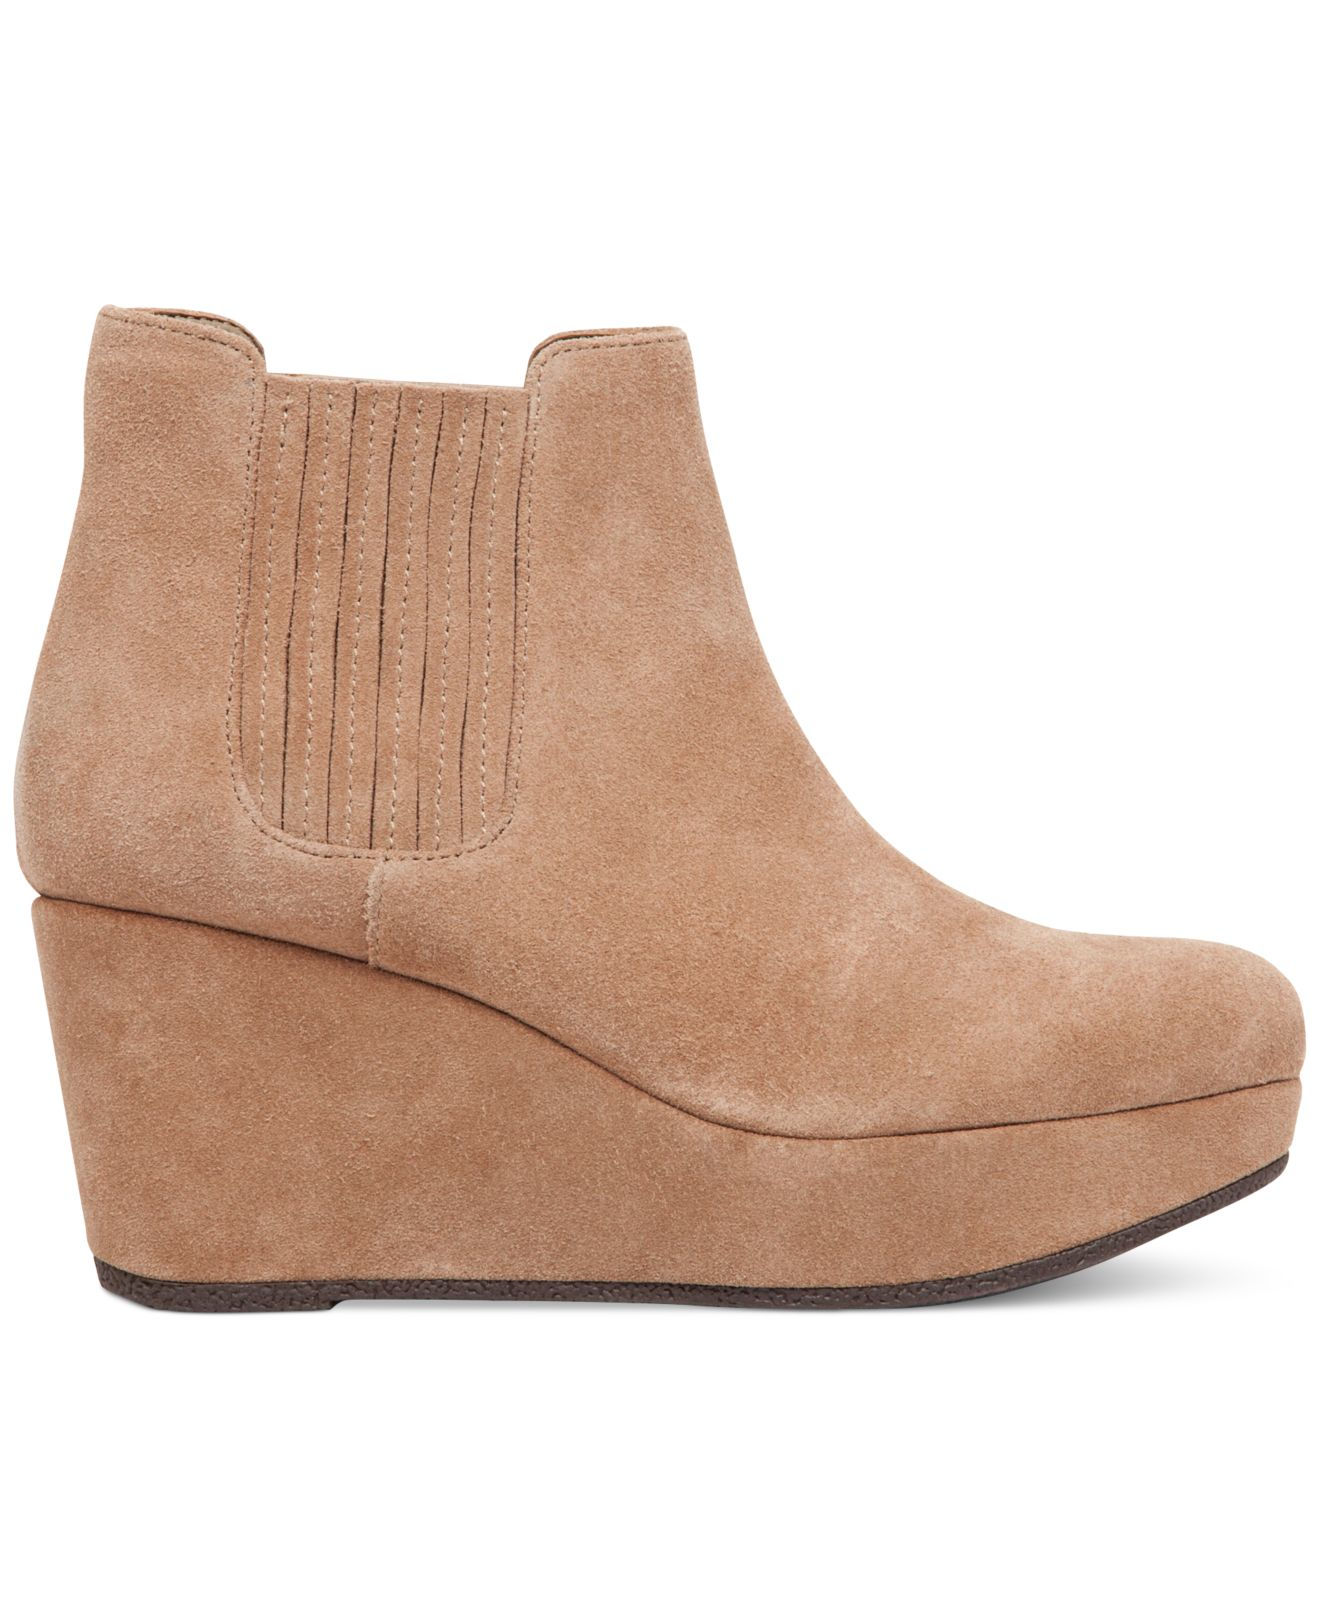 Bcbgeneration Karol Platform Wedge Booties In Beige Lyst